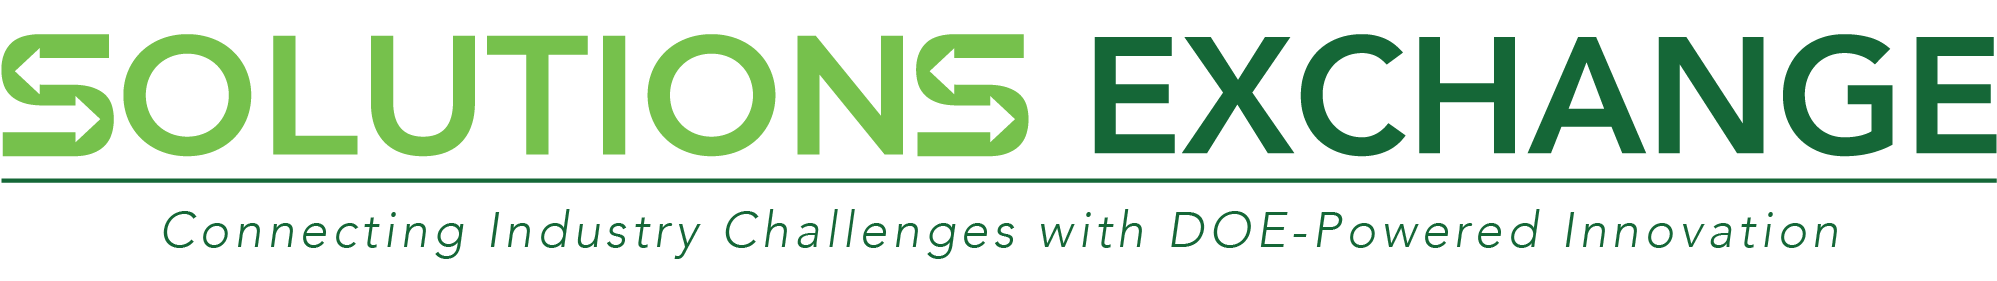 Solutions Exchange